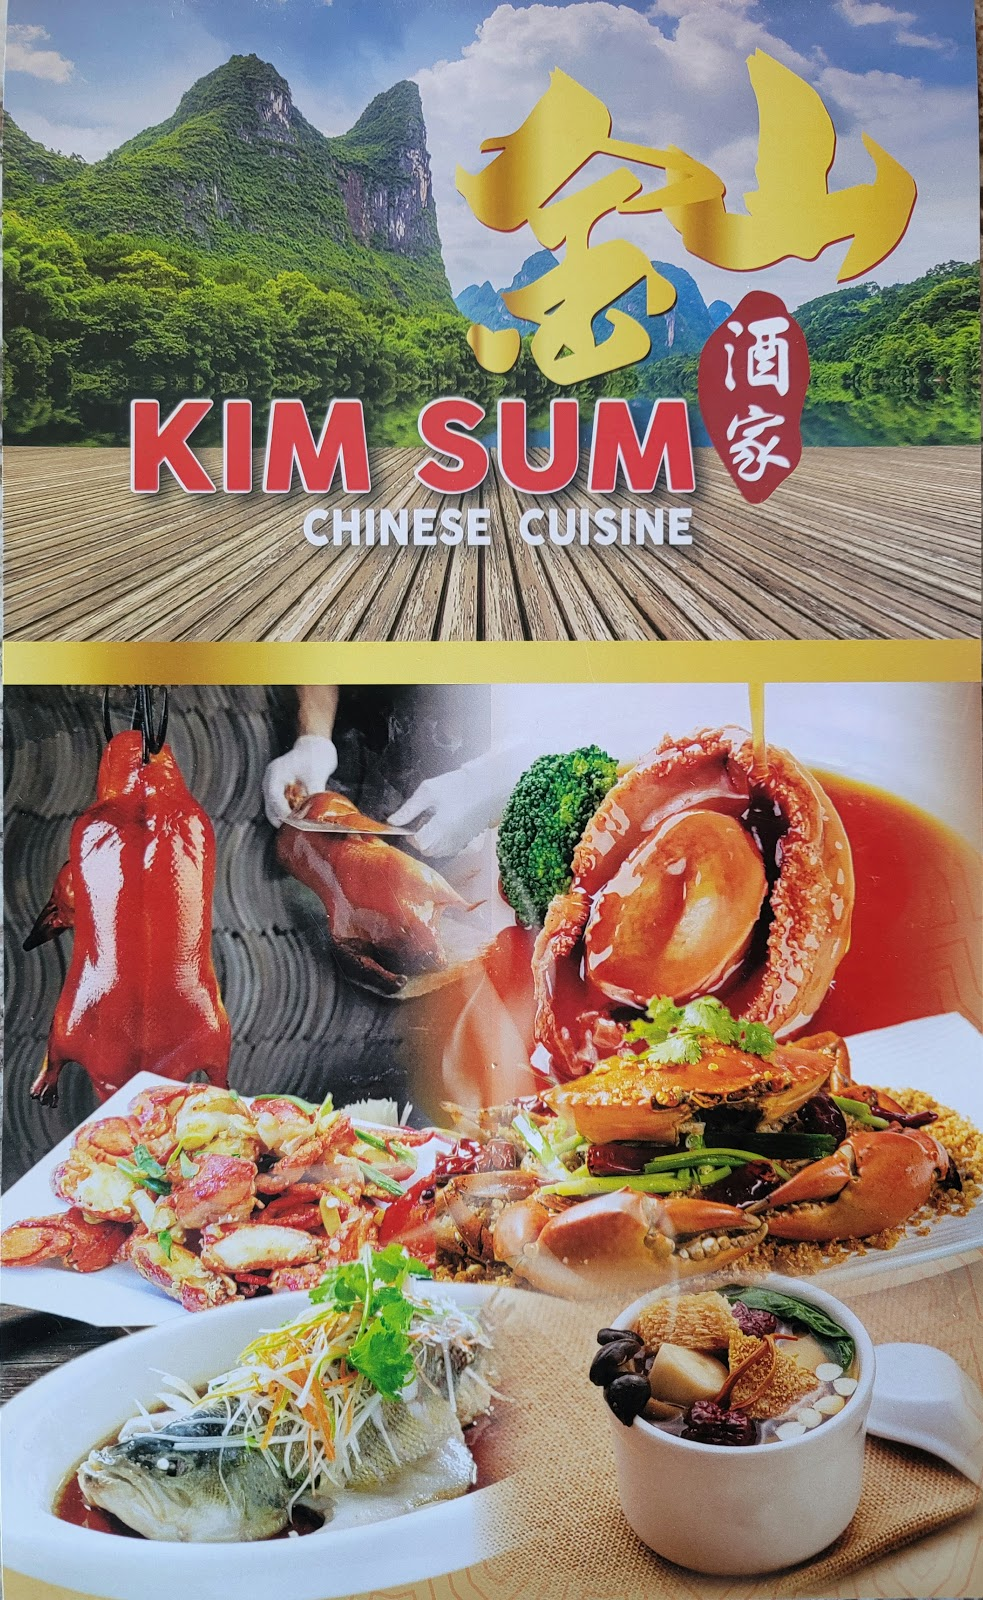 Kim Sum | restaurant | 5201 NJ-38, Pennsauken Township, NJ 08109, USA | 8568852288 OR +1 856-885-2288